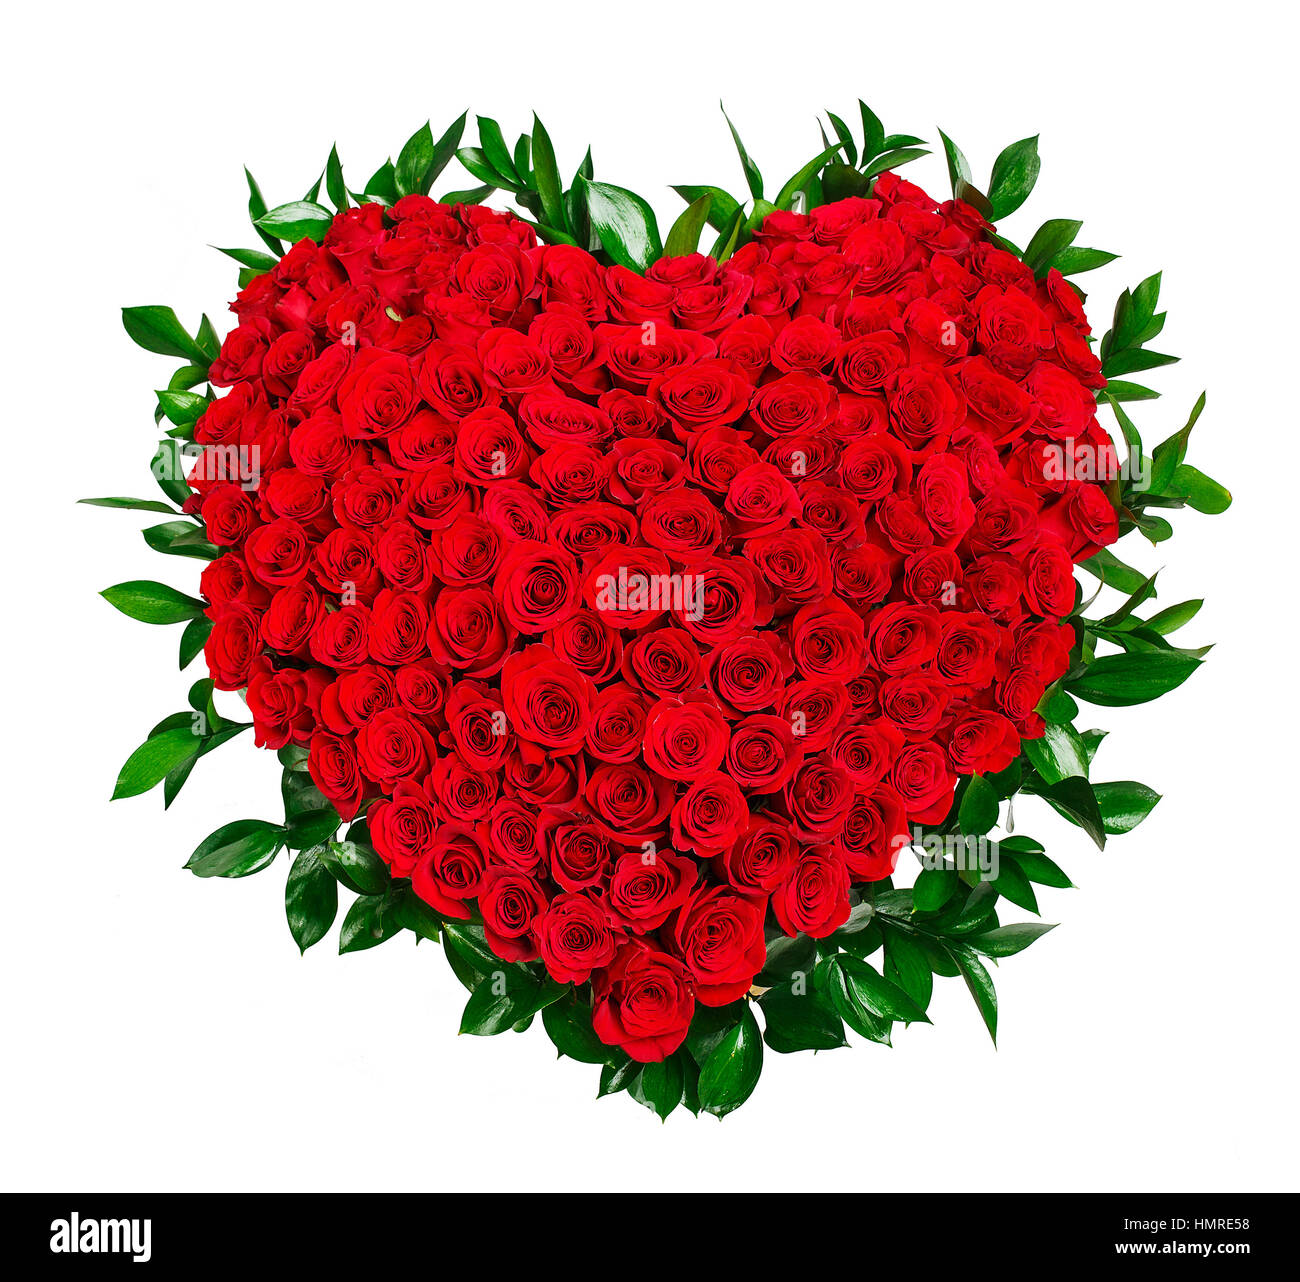 Heart shaped bouquet of red roses Stock Photo: 133281716 - Alamy